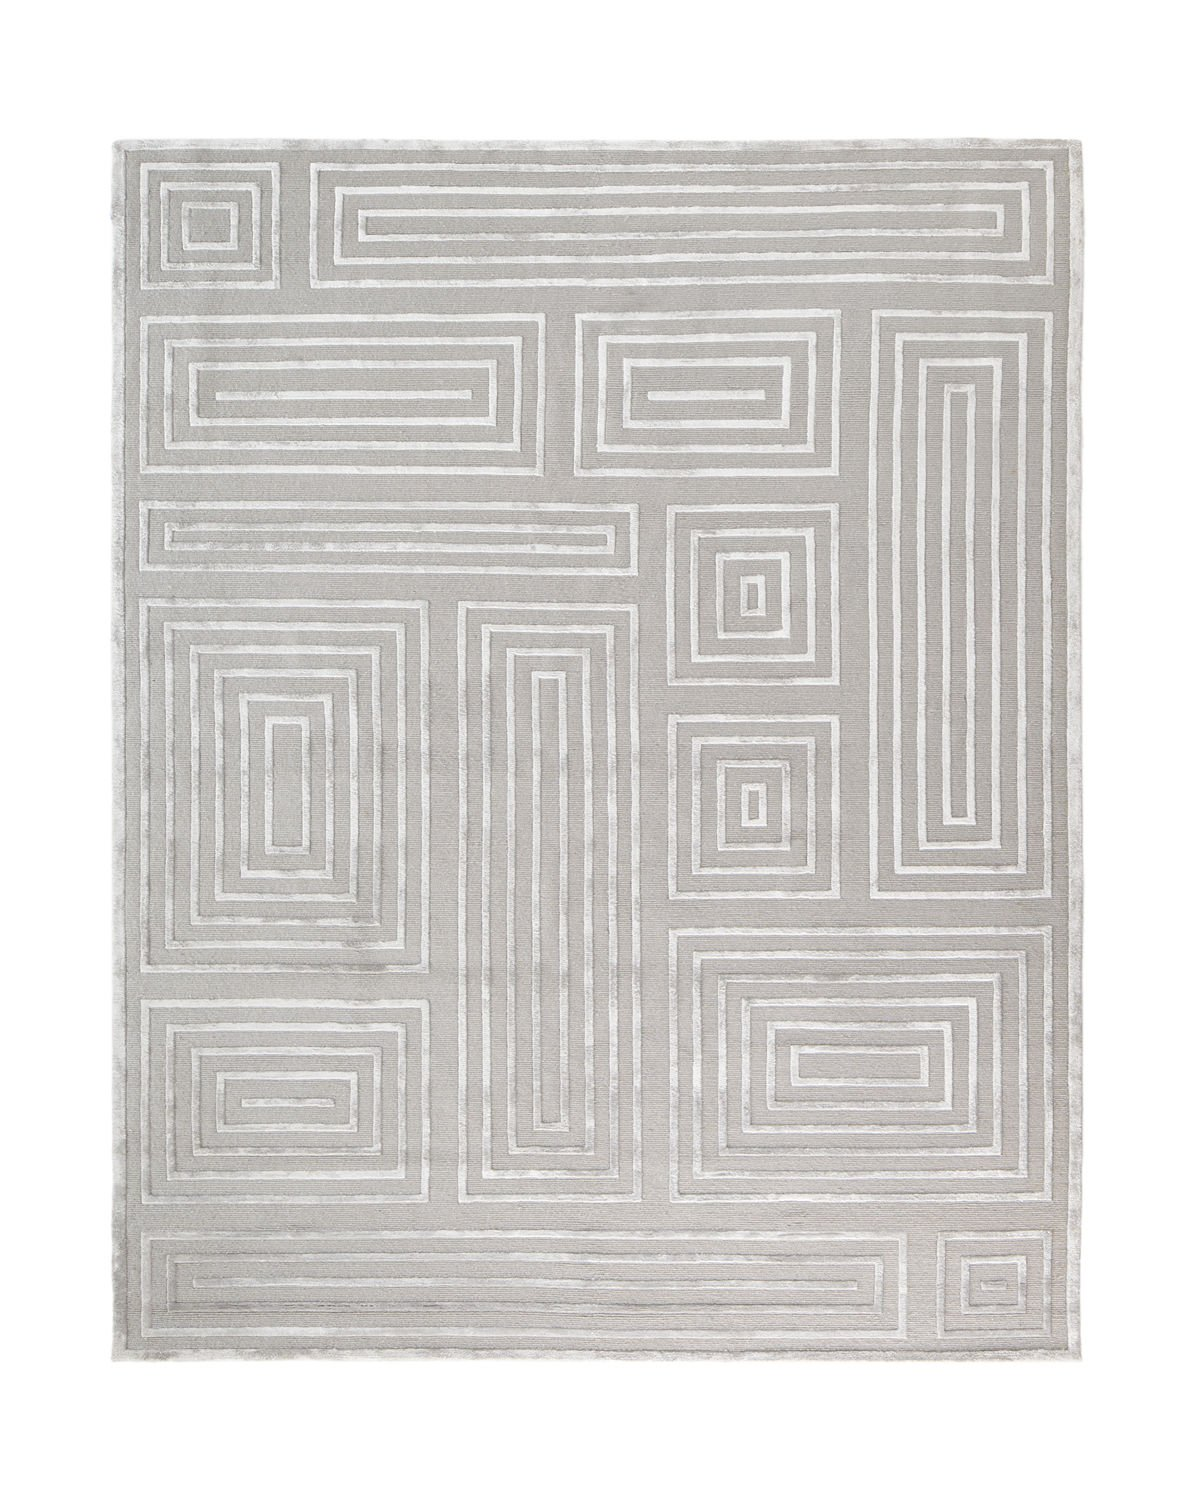 Spiral Quads Rug, 8' x 10' Product Image